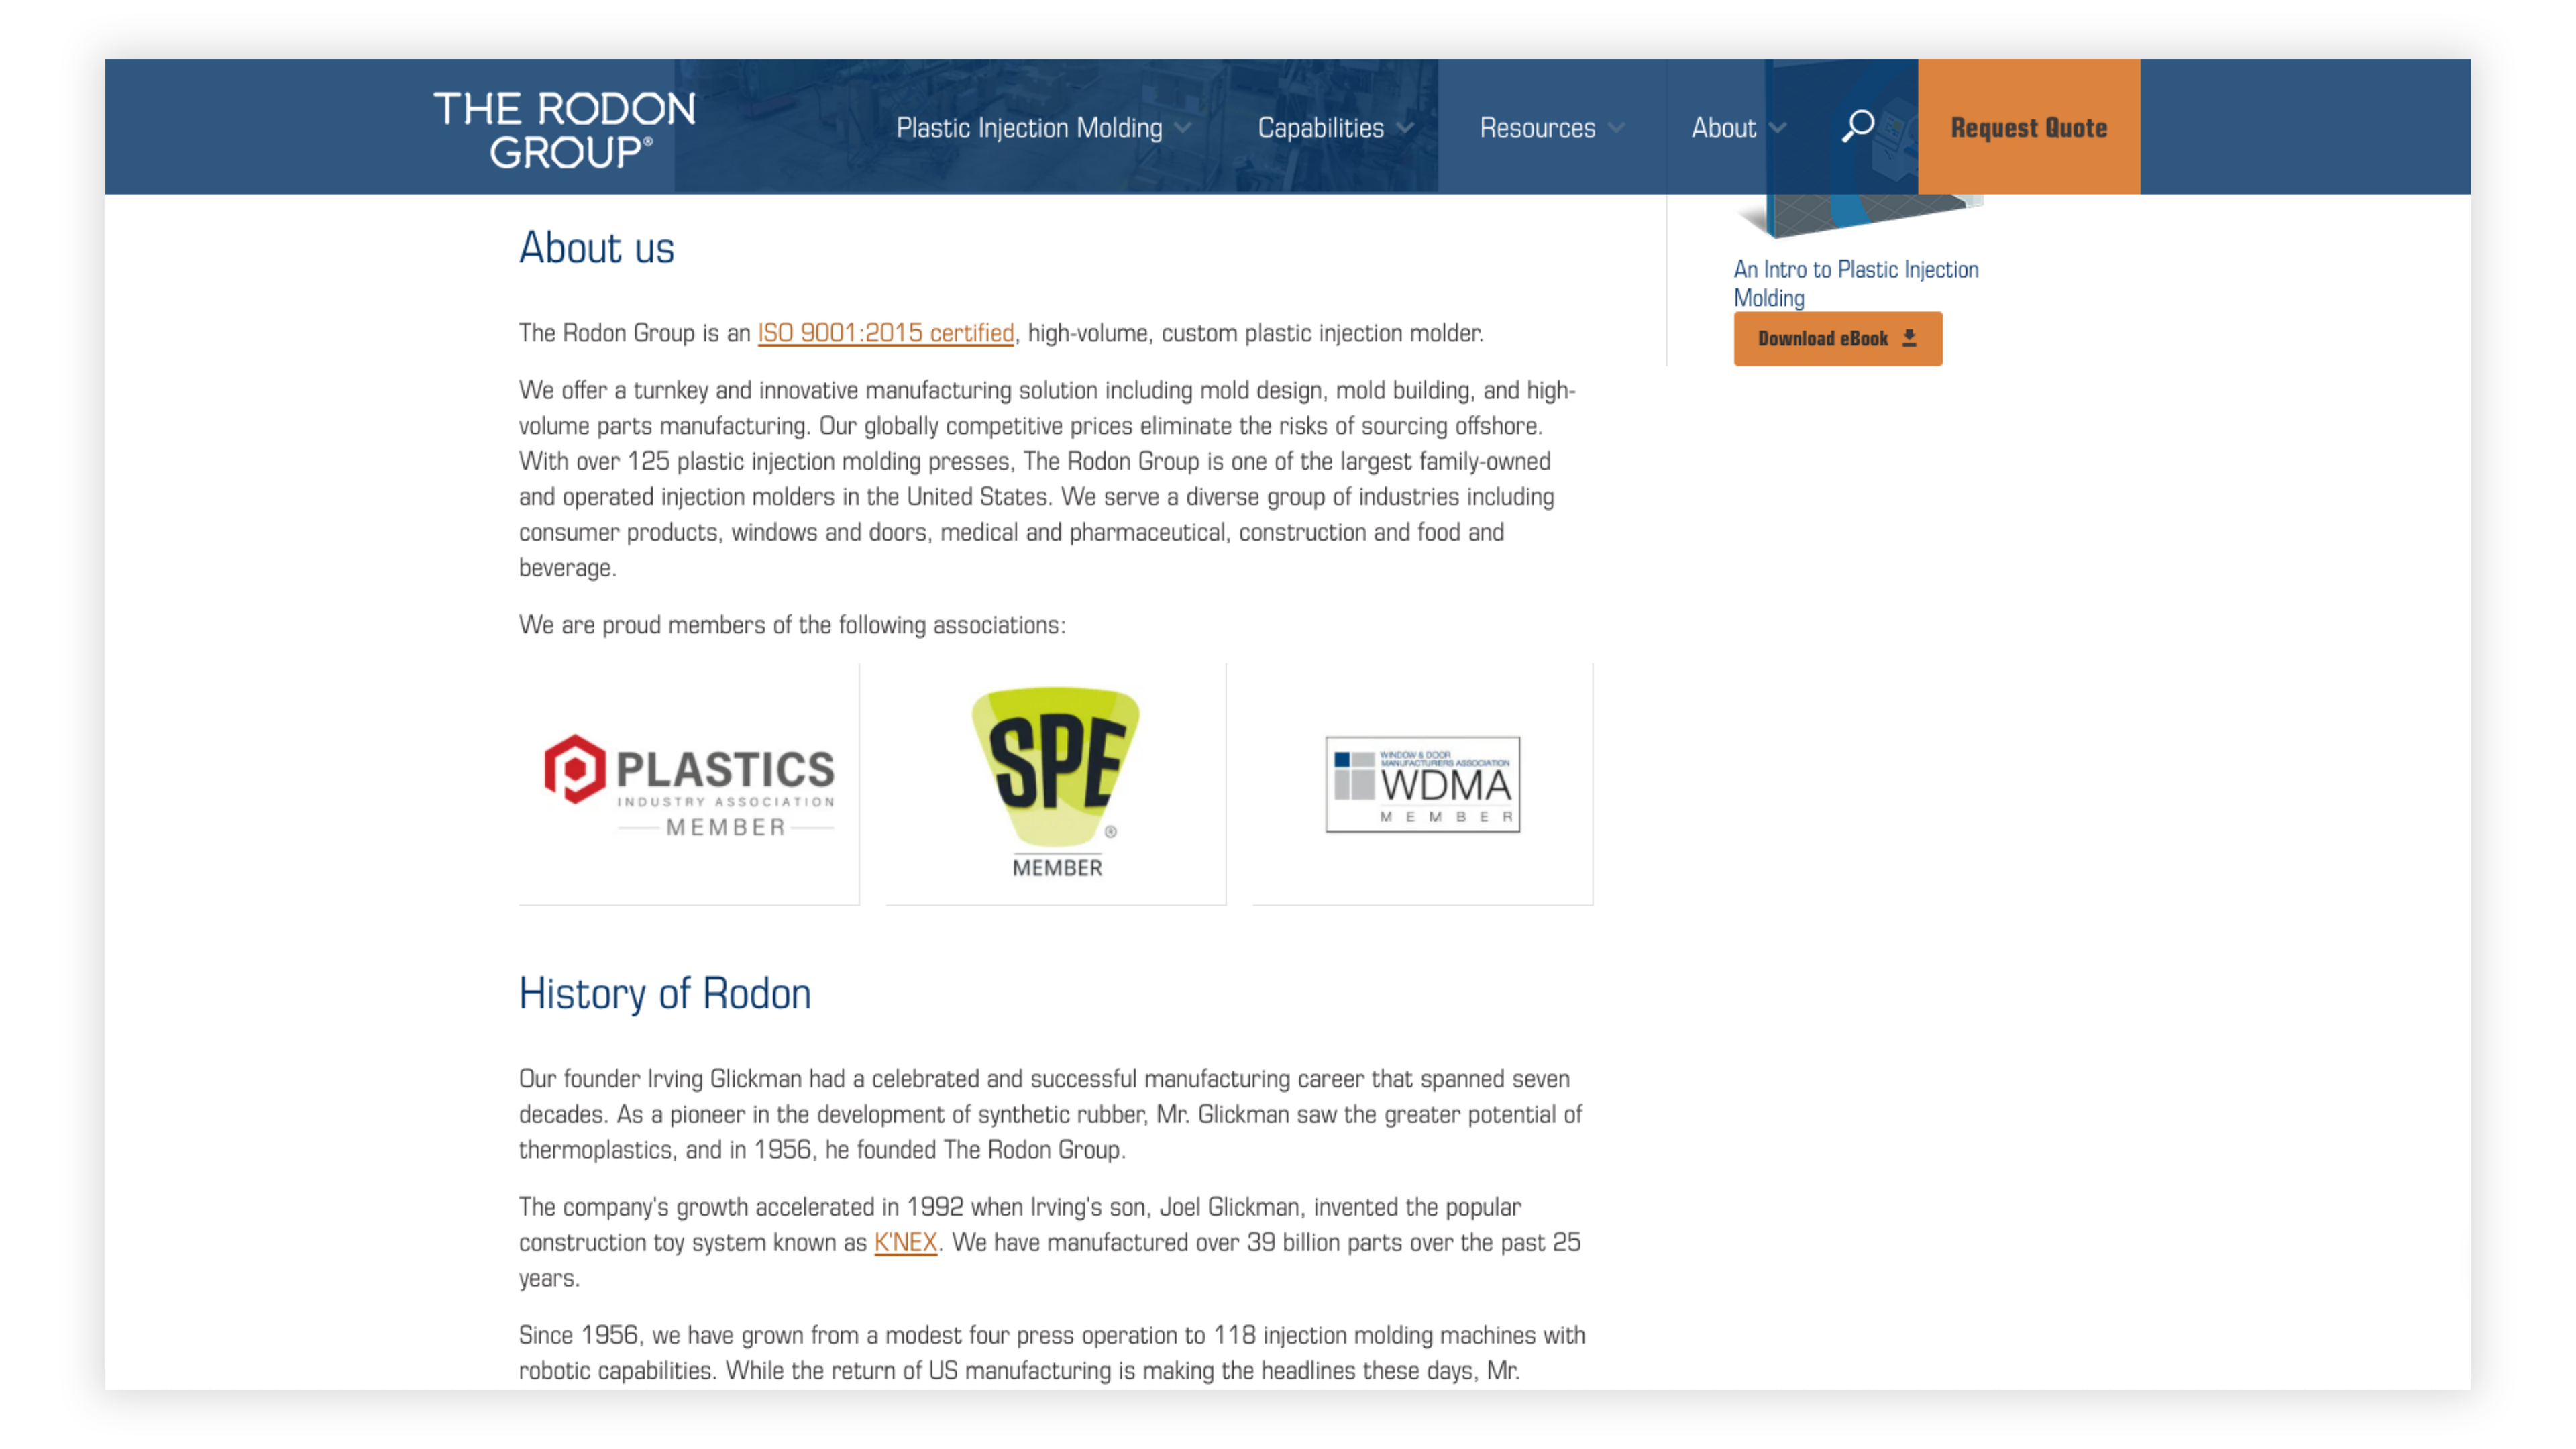 Rodon Group About Us Page